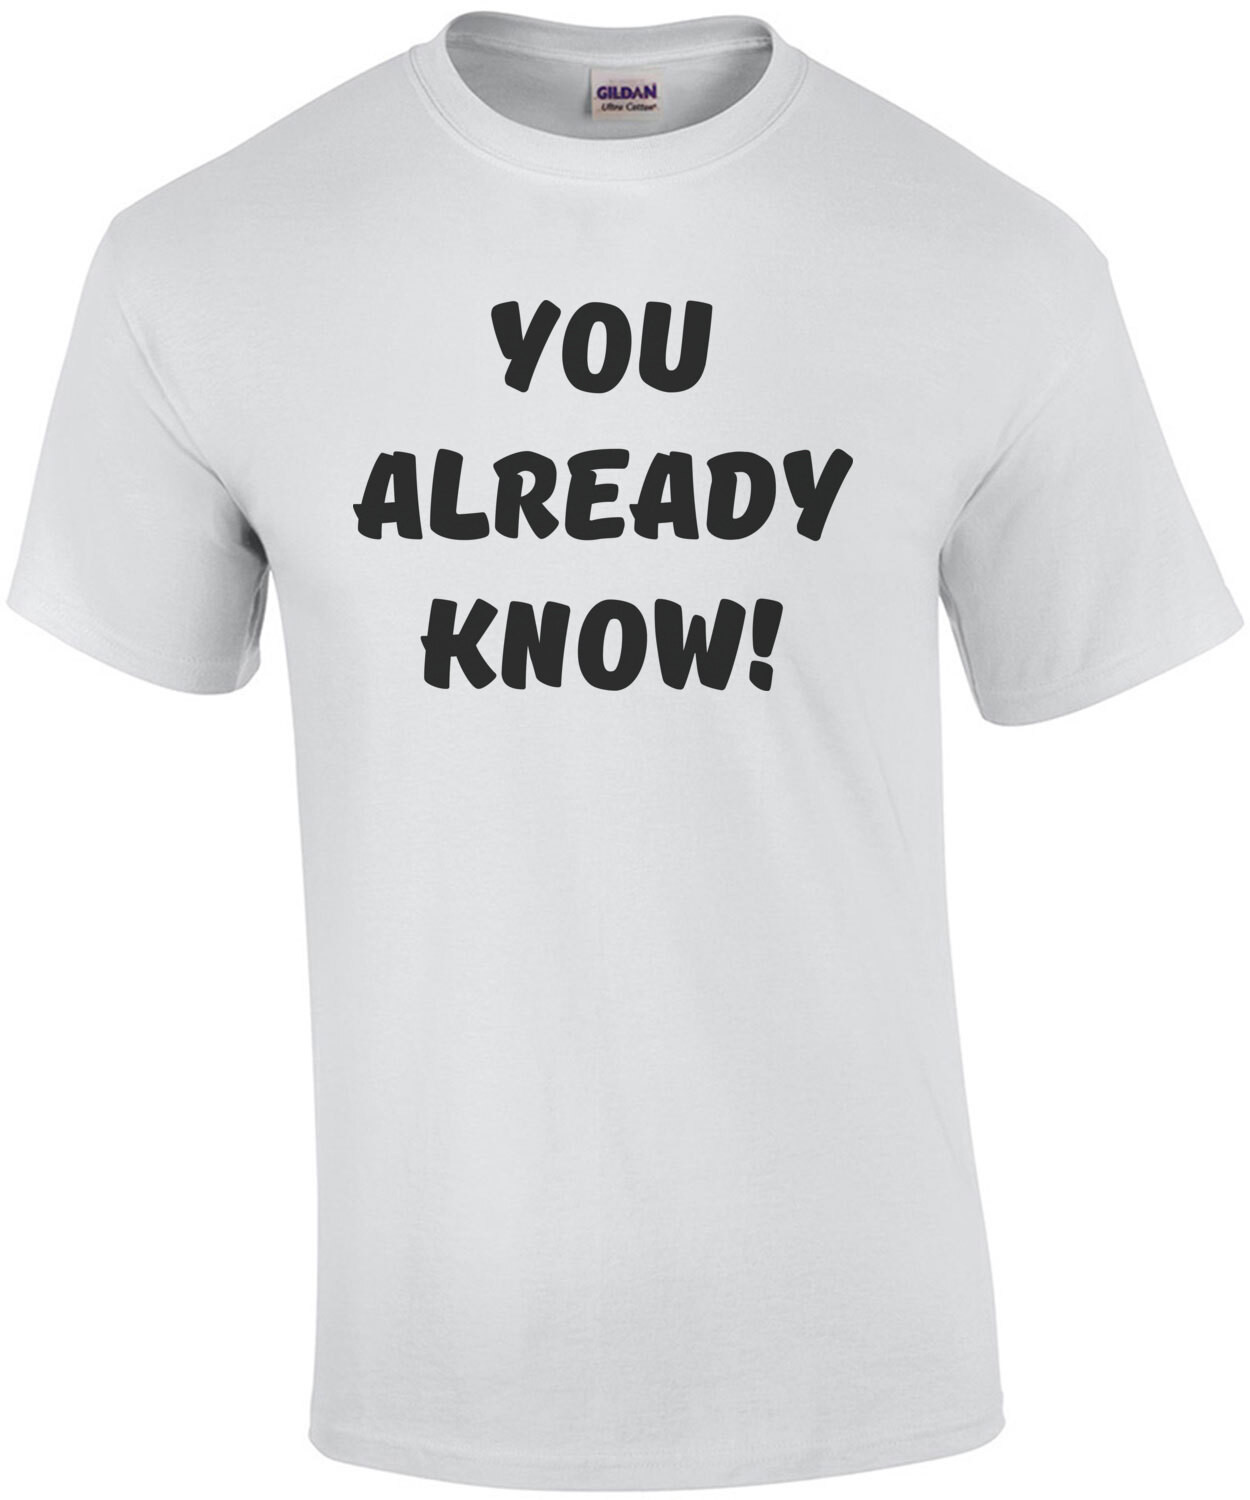 You Already Know! Funny T-Shirt